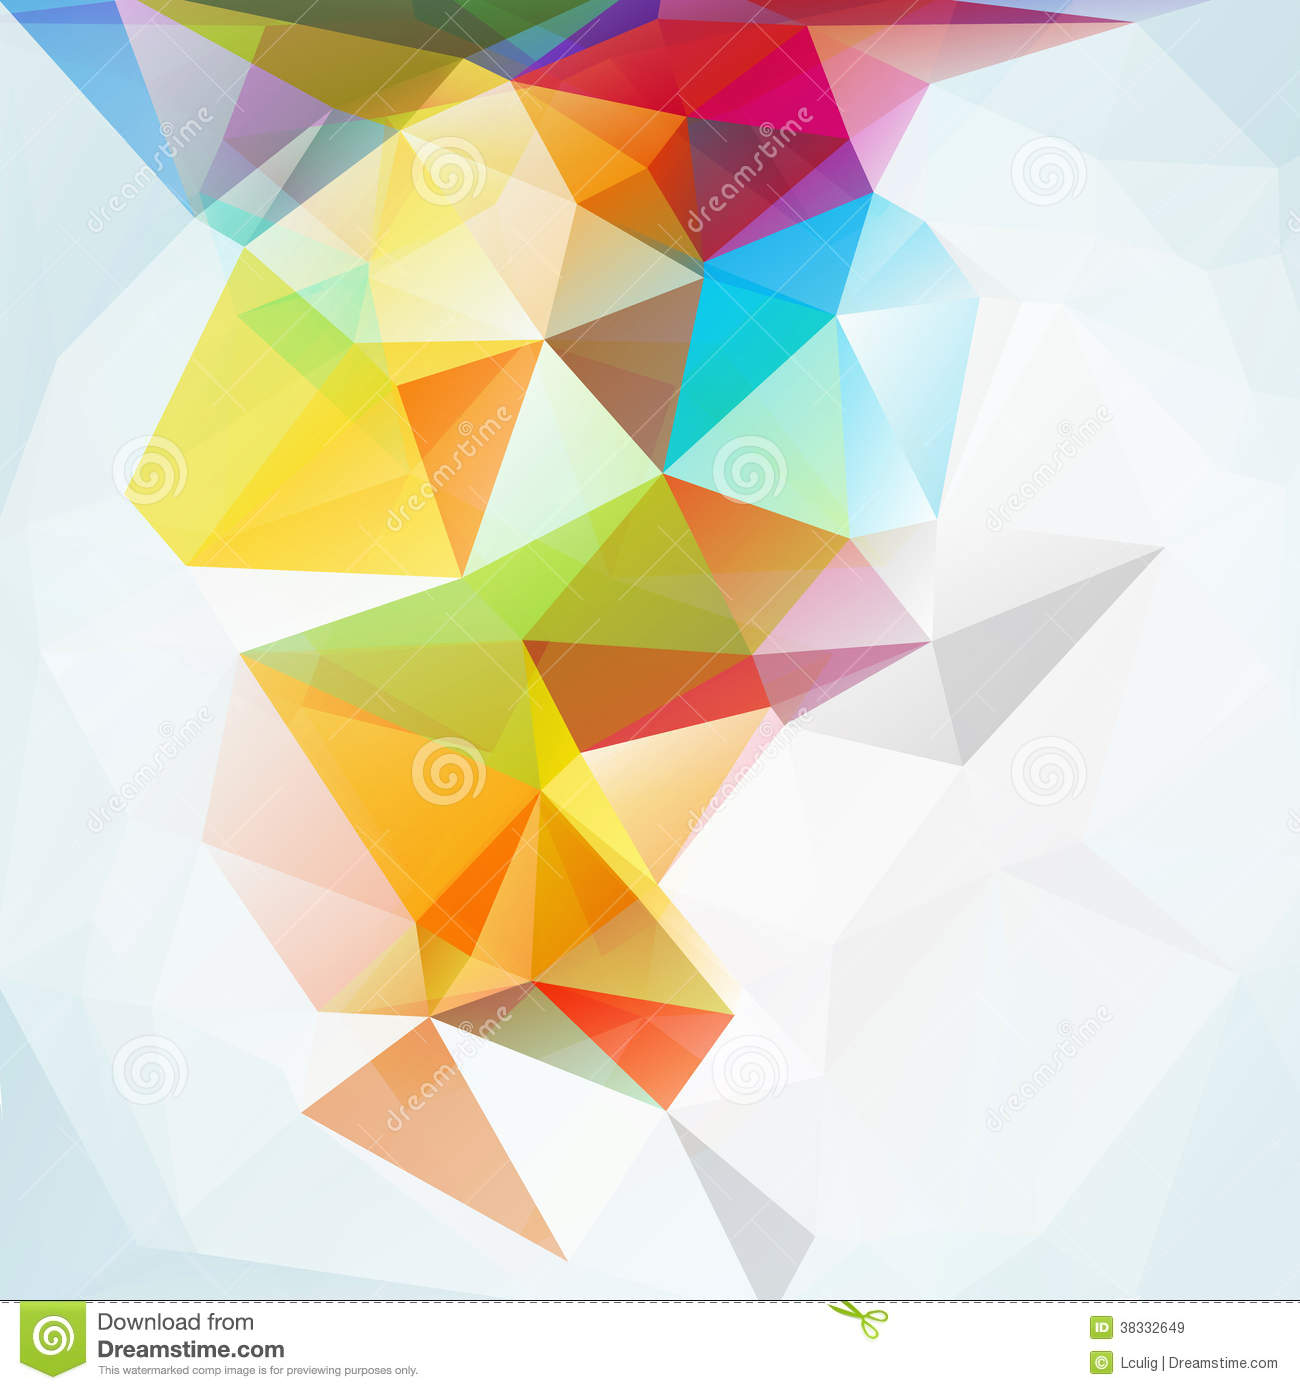 abstract polygonal colorful background - photo #46